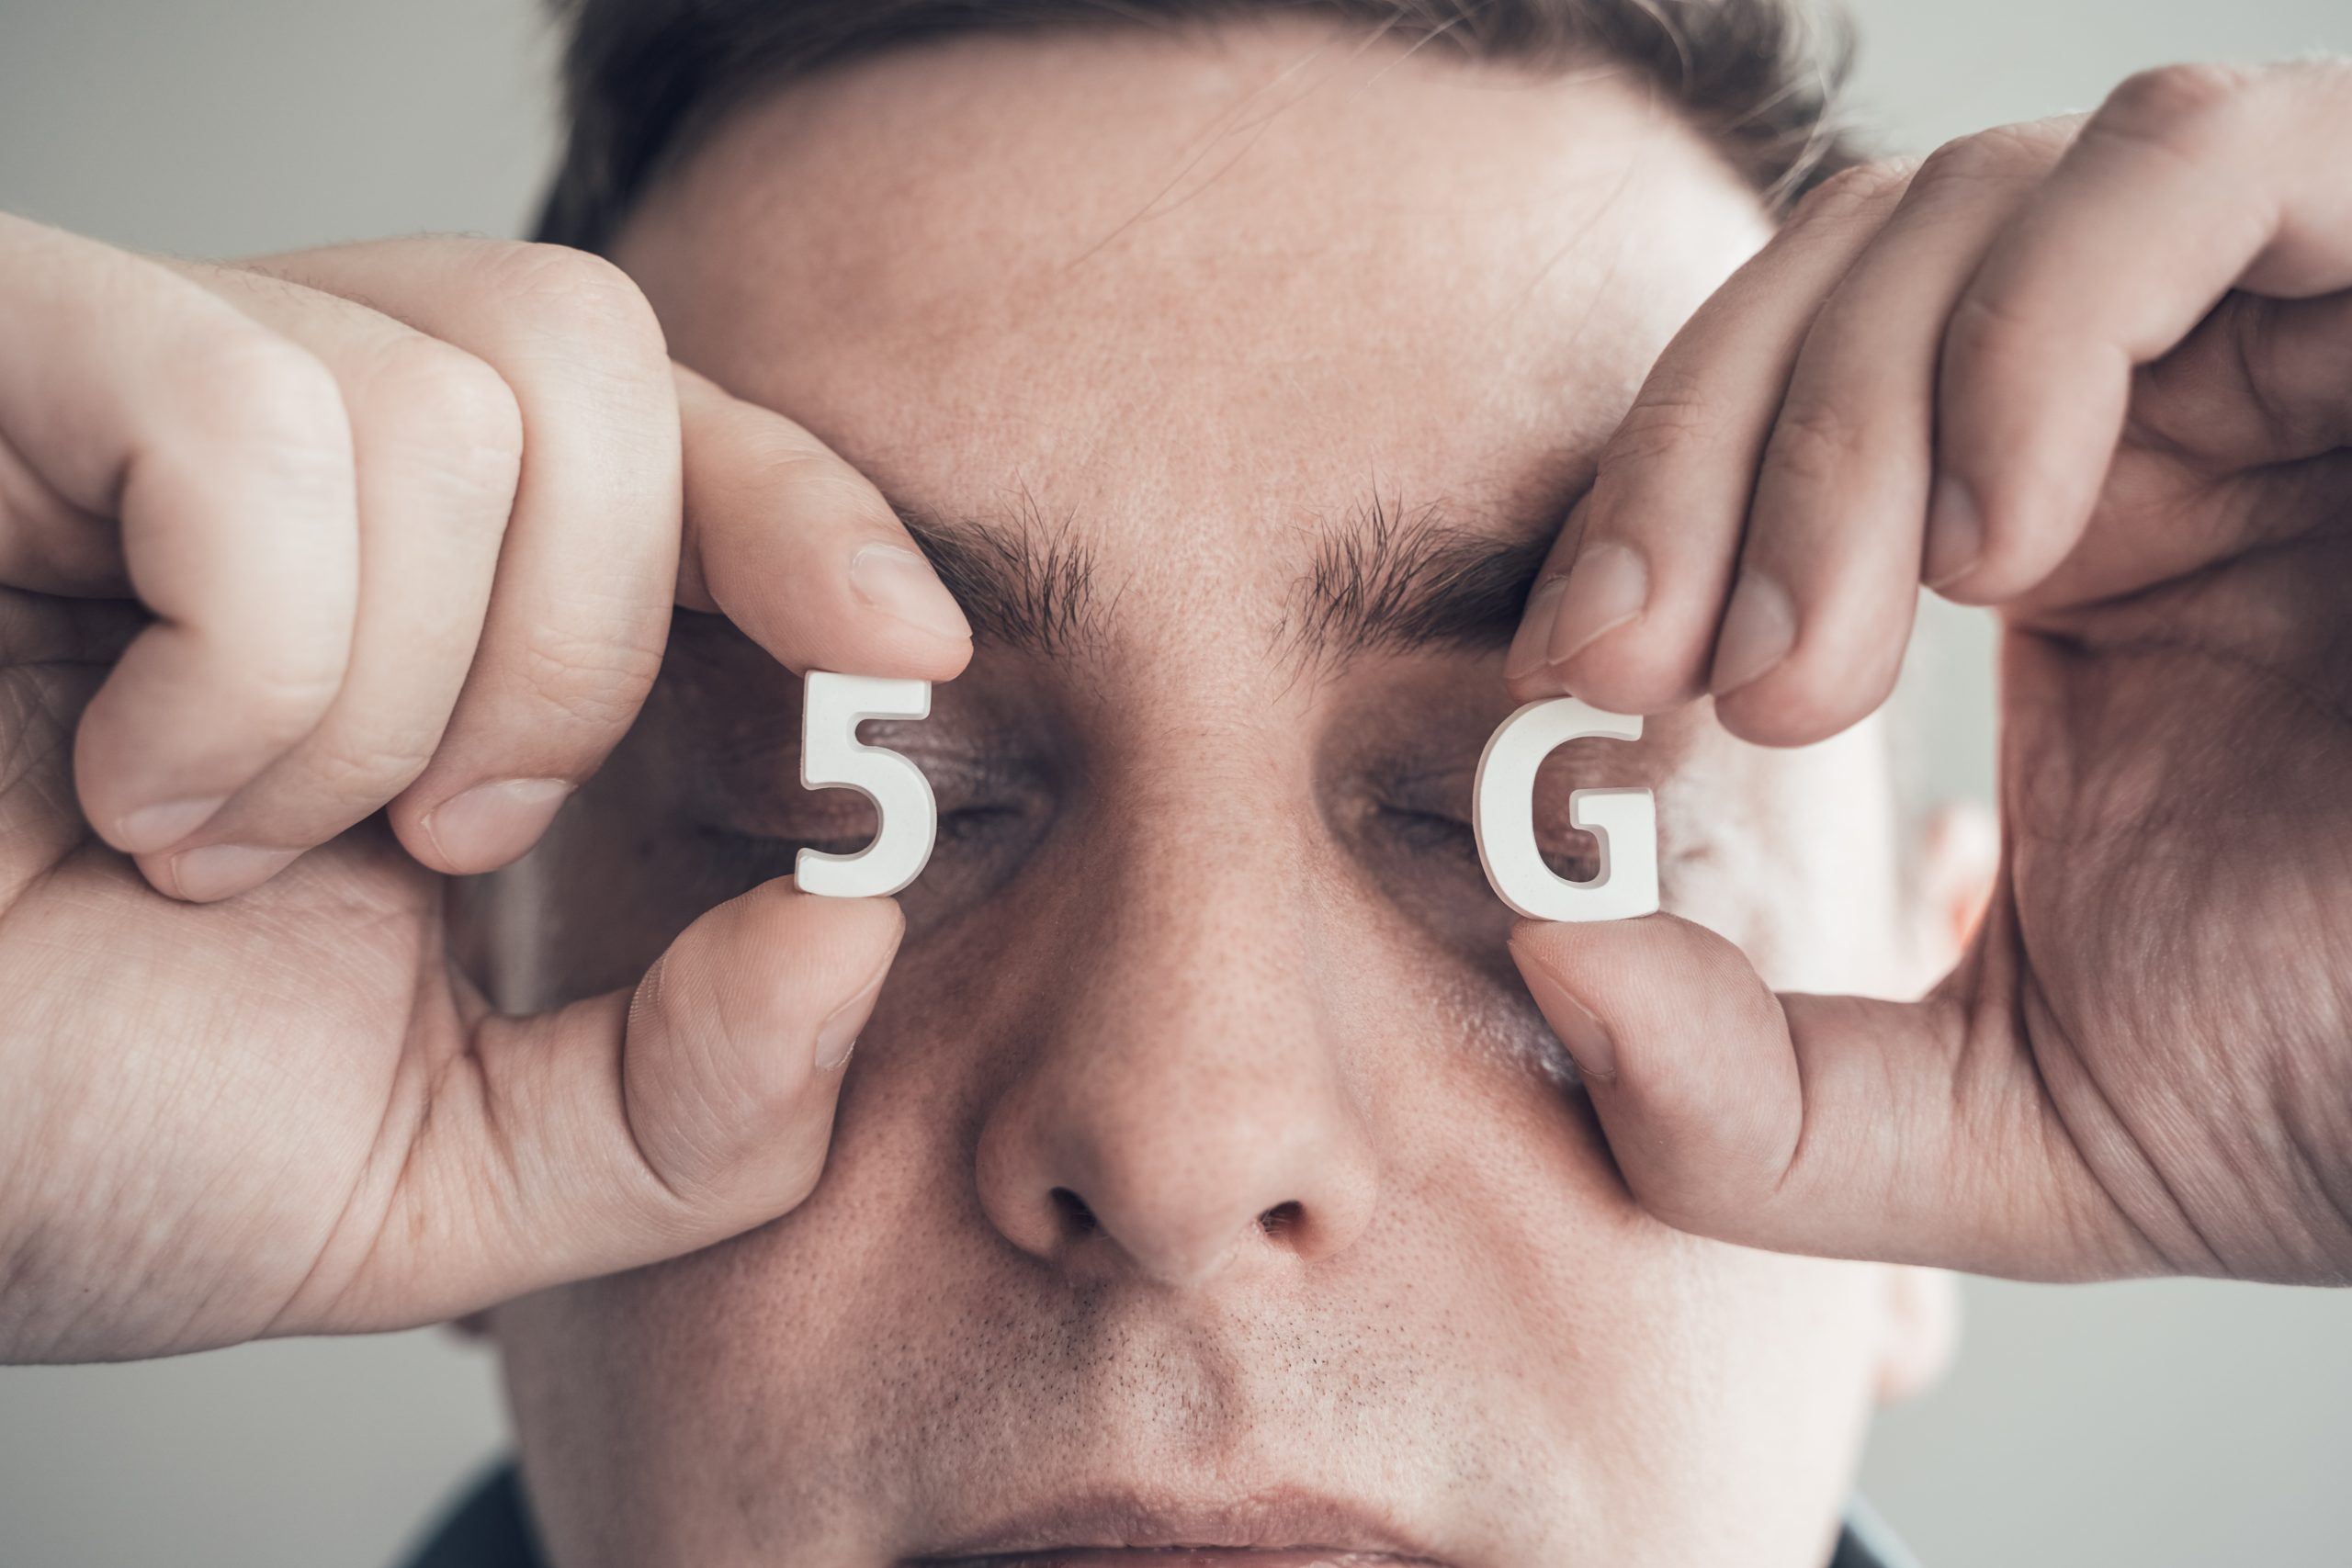 5G Radiation Protection: Protect Your Family from 5G